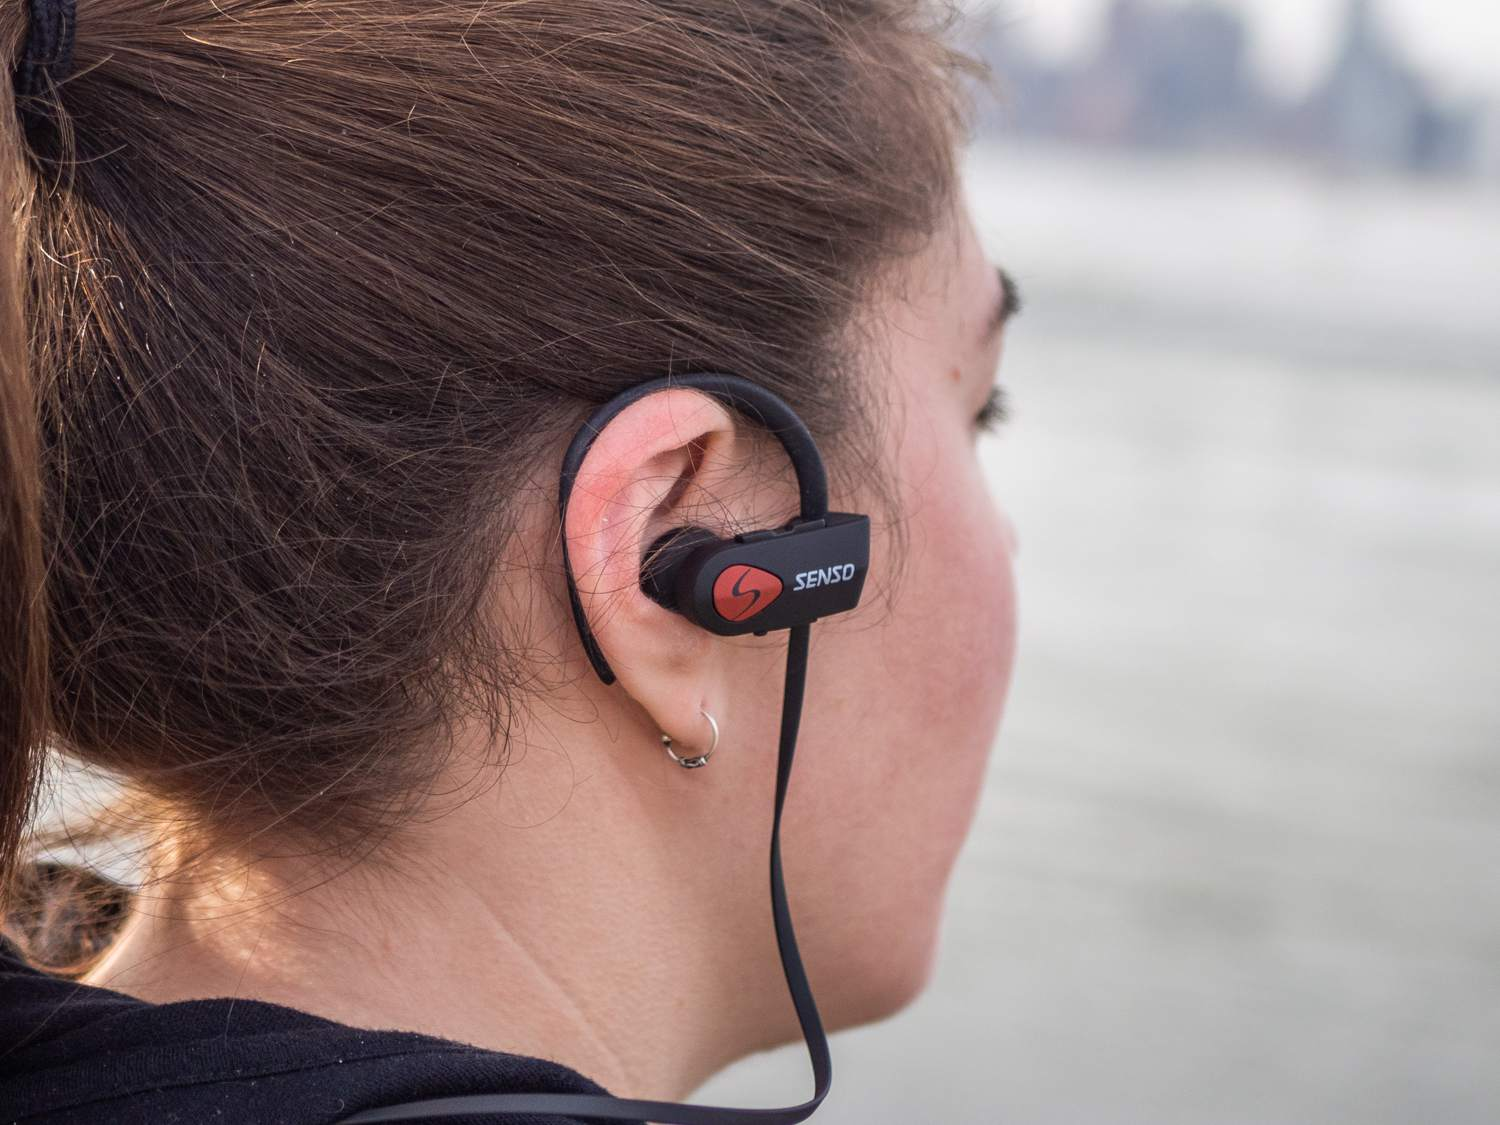 The 10 Best Wireless Earbuds of 2019